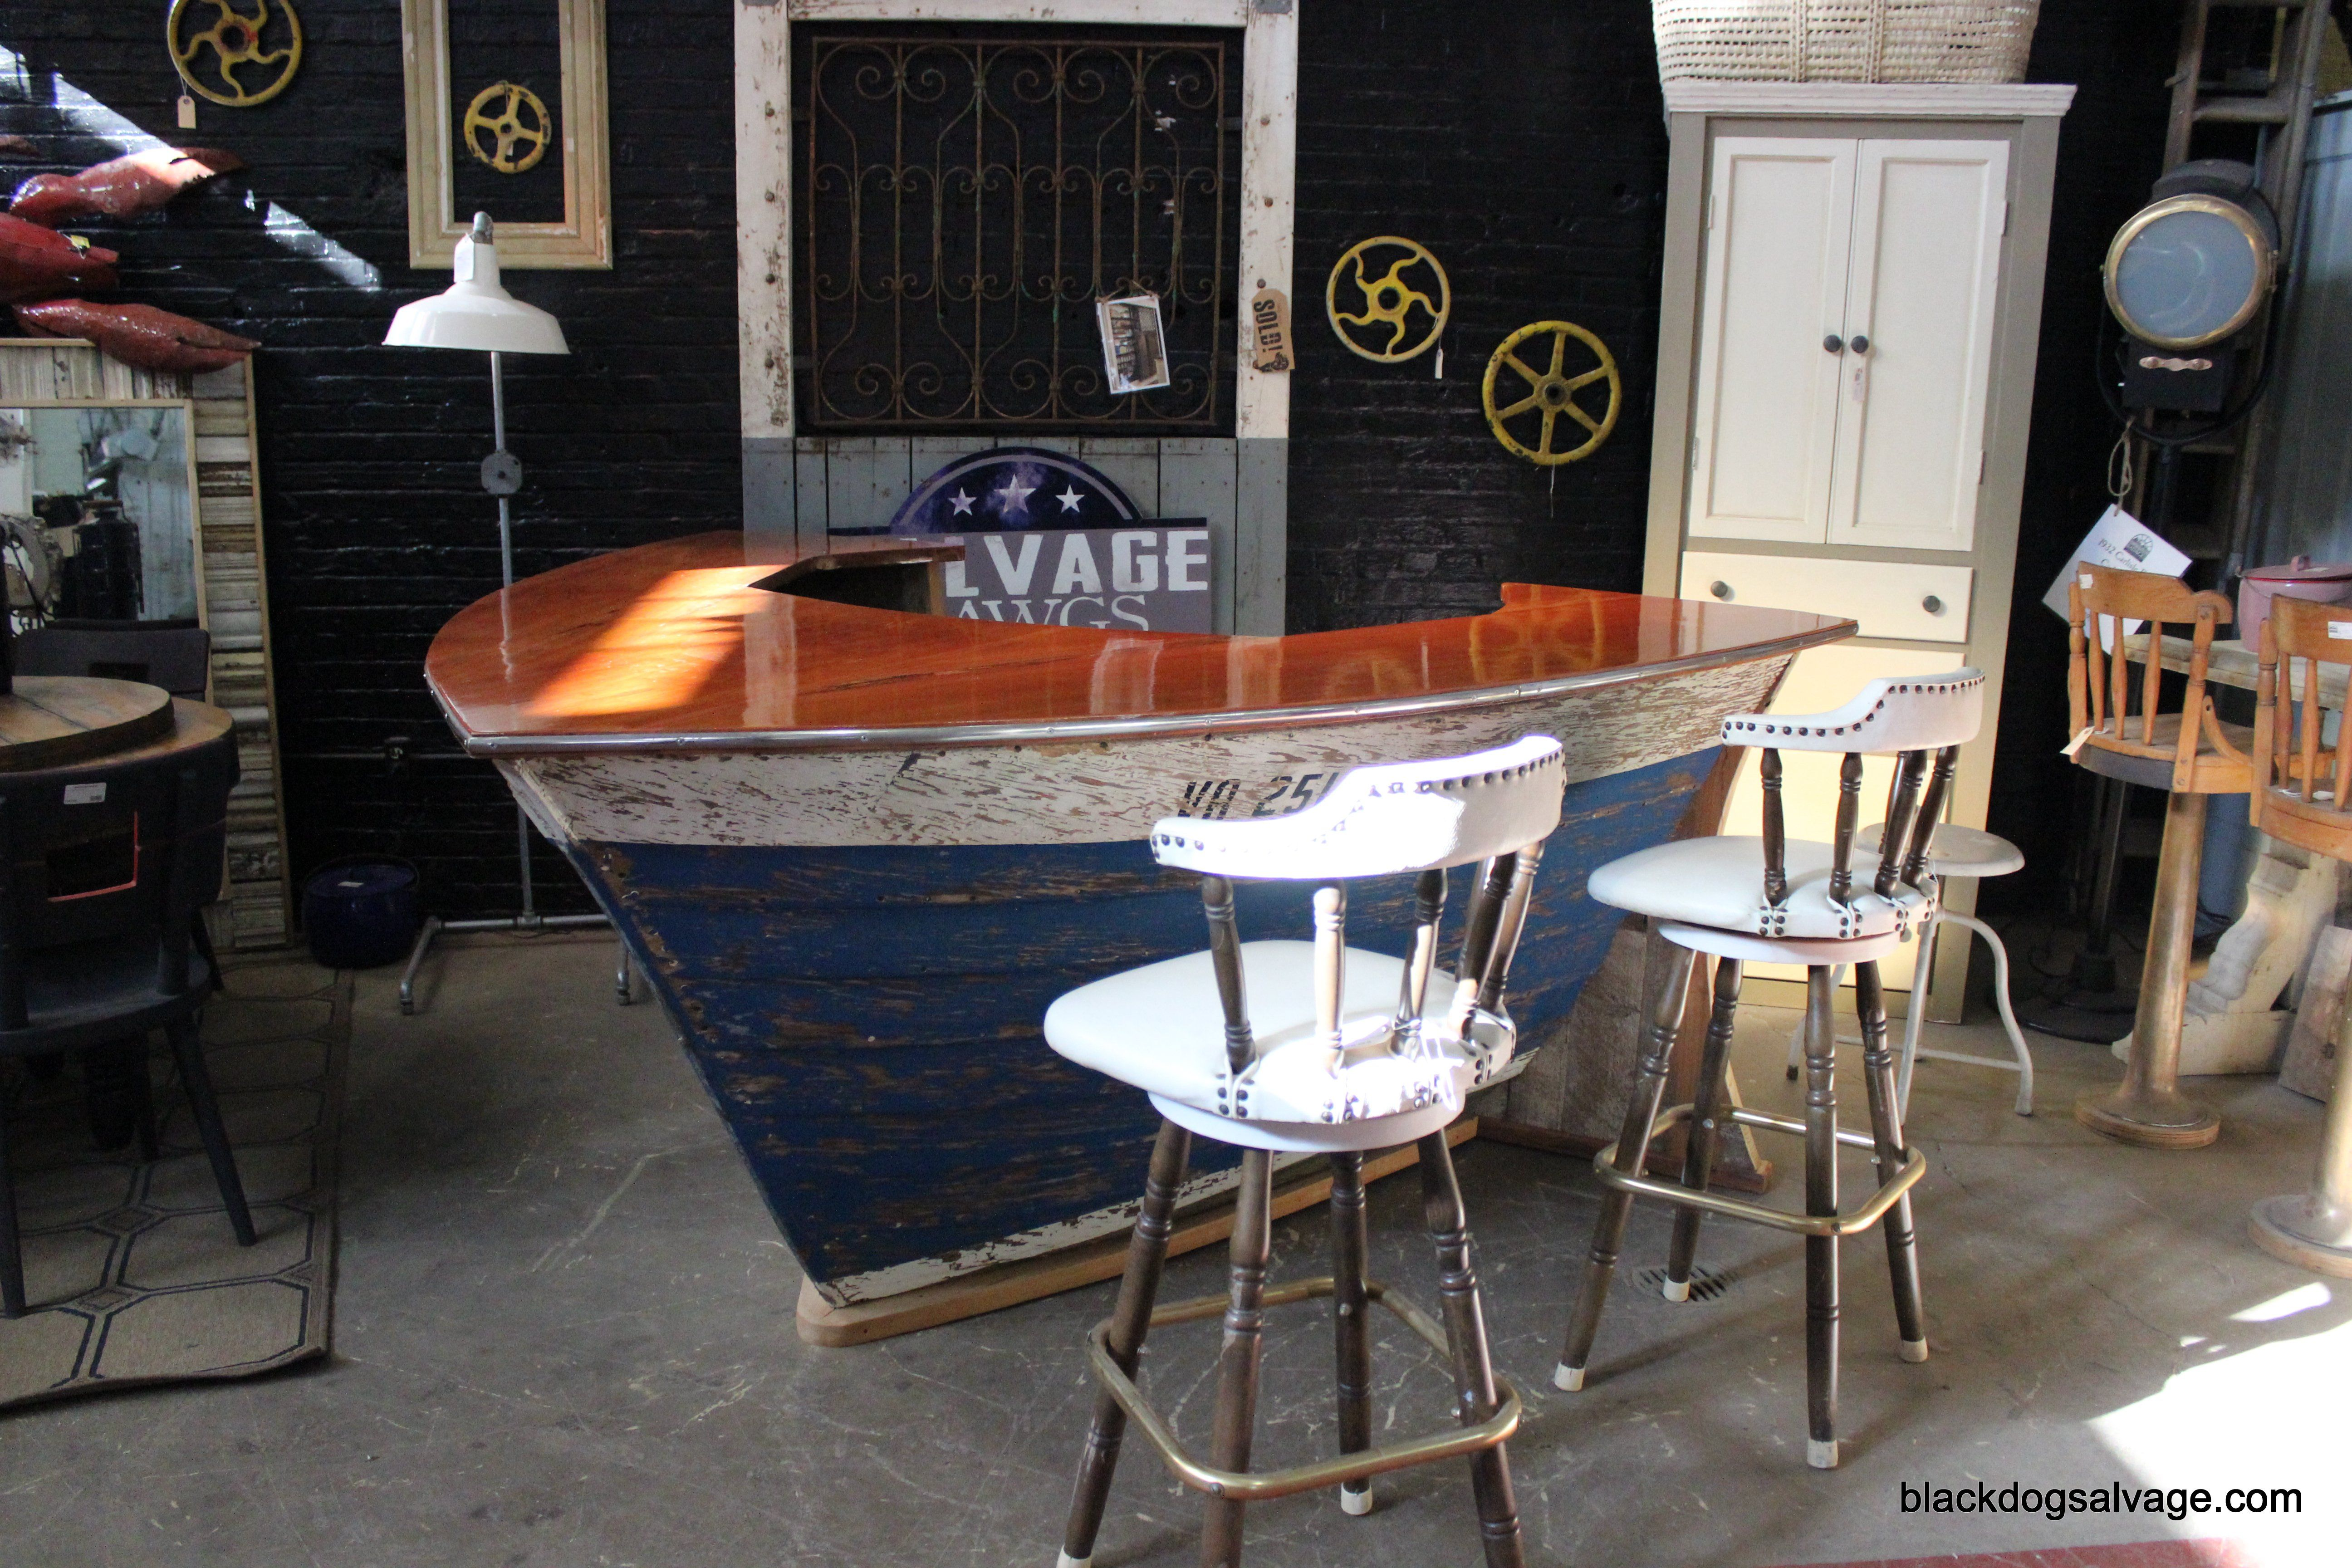 Boat Bar By Black Dog Salvage In Roanoke, Va. I Love This Bar.